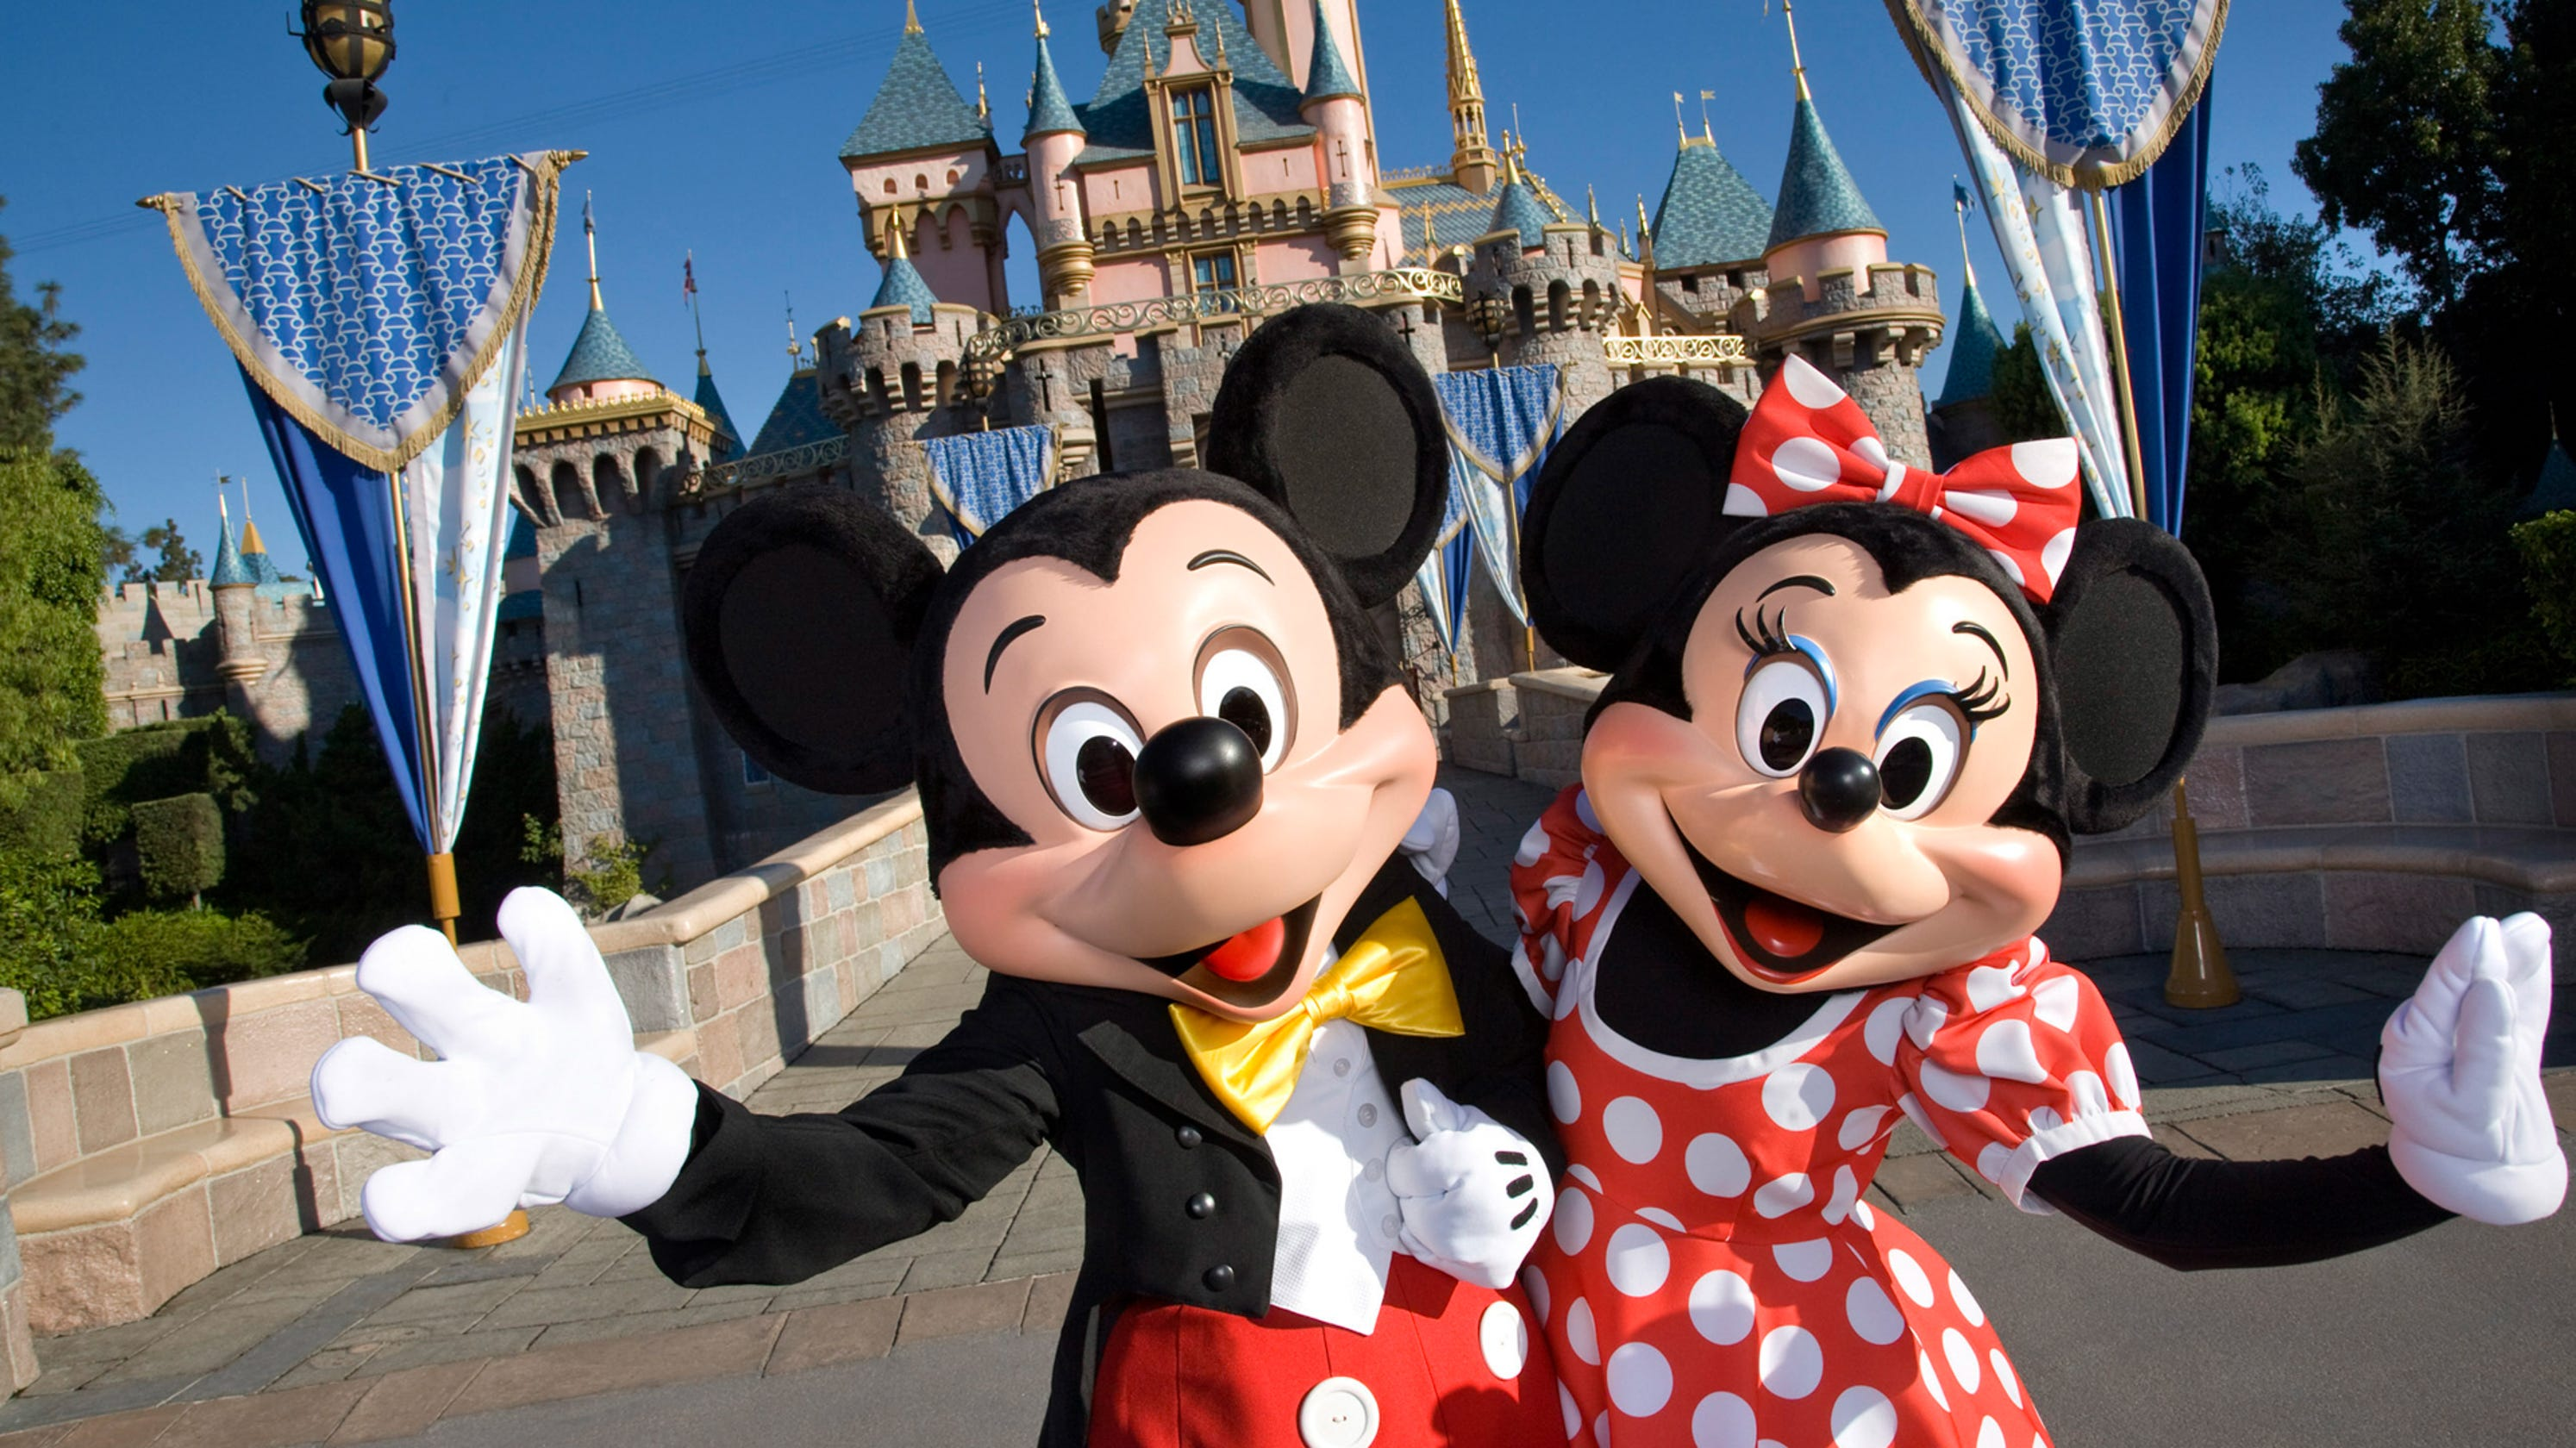 Disney hacks: 17 ways to save money on trips to Orlando or Anaheim